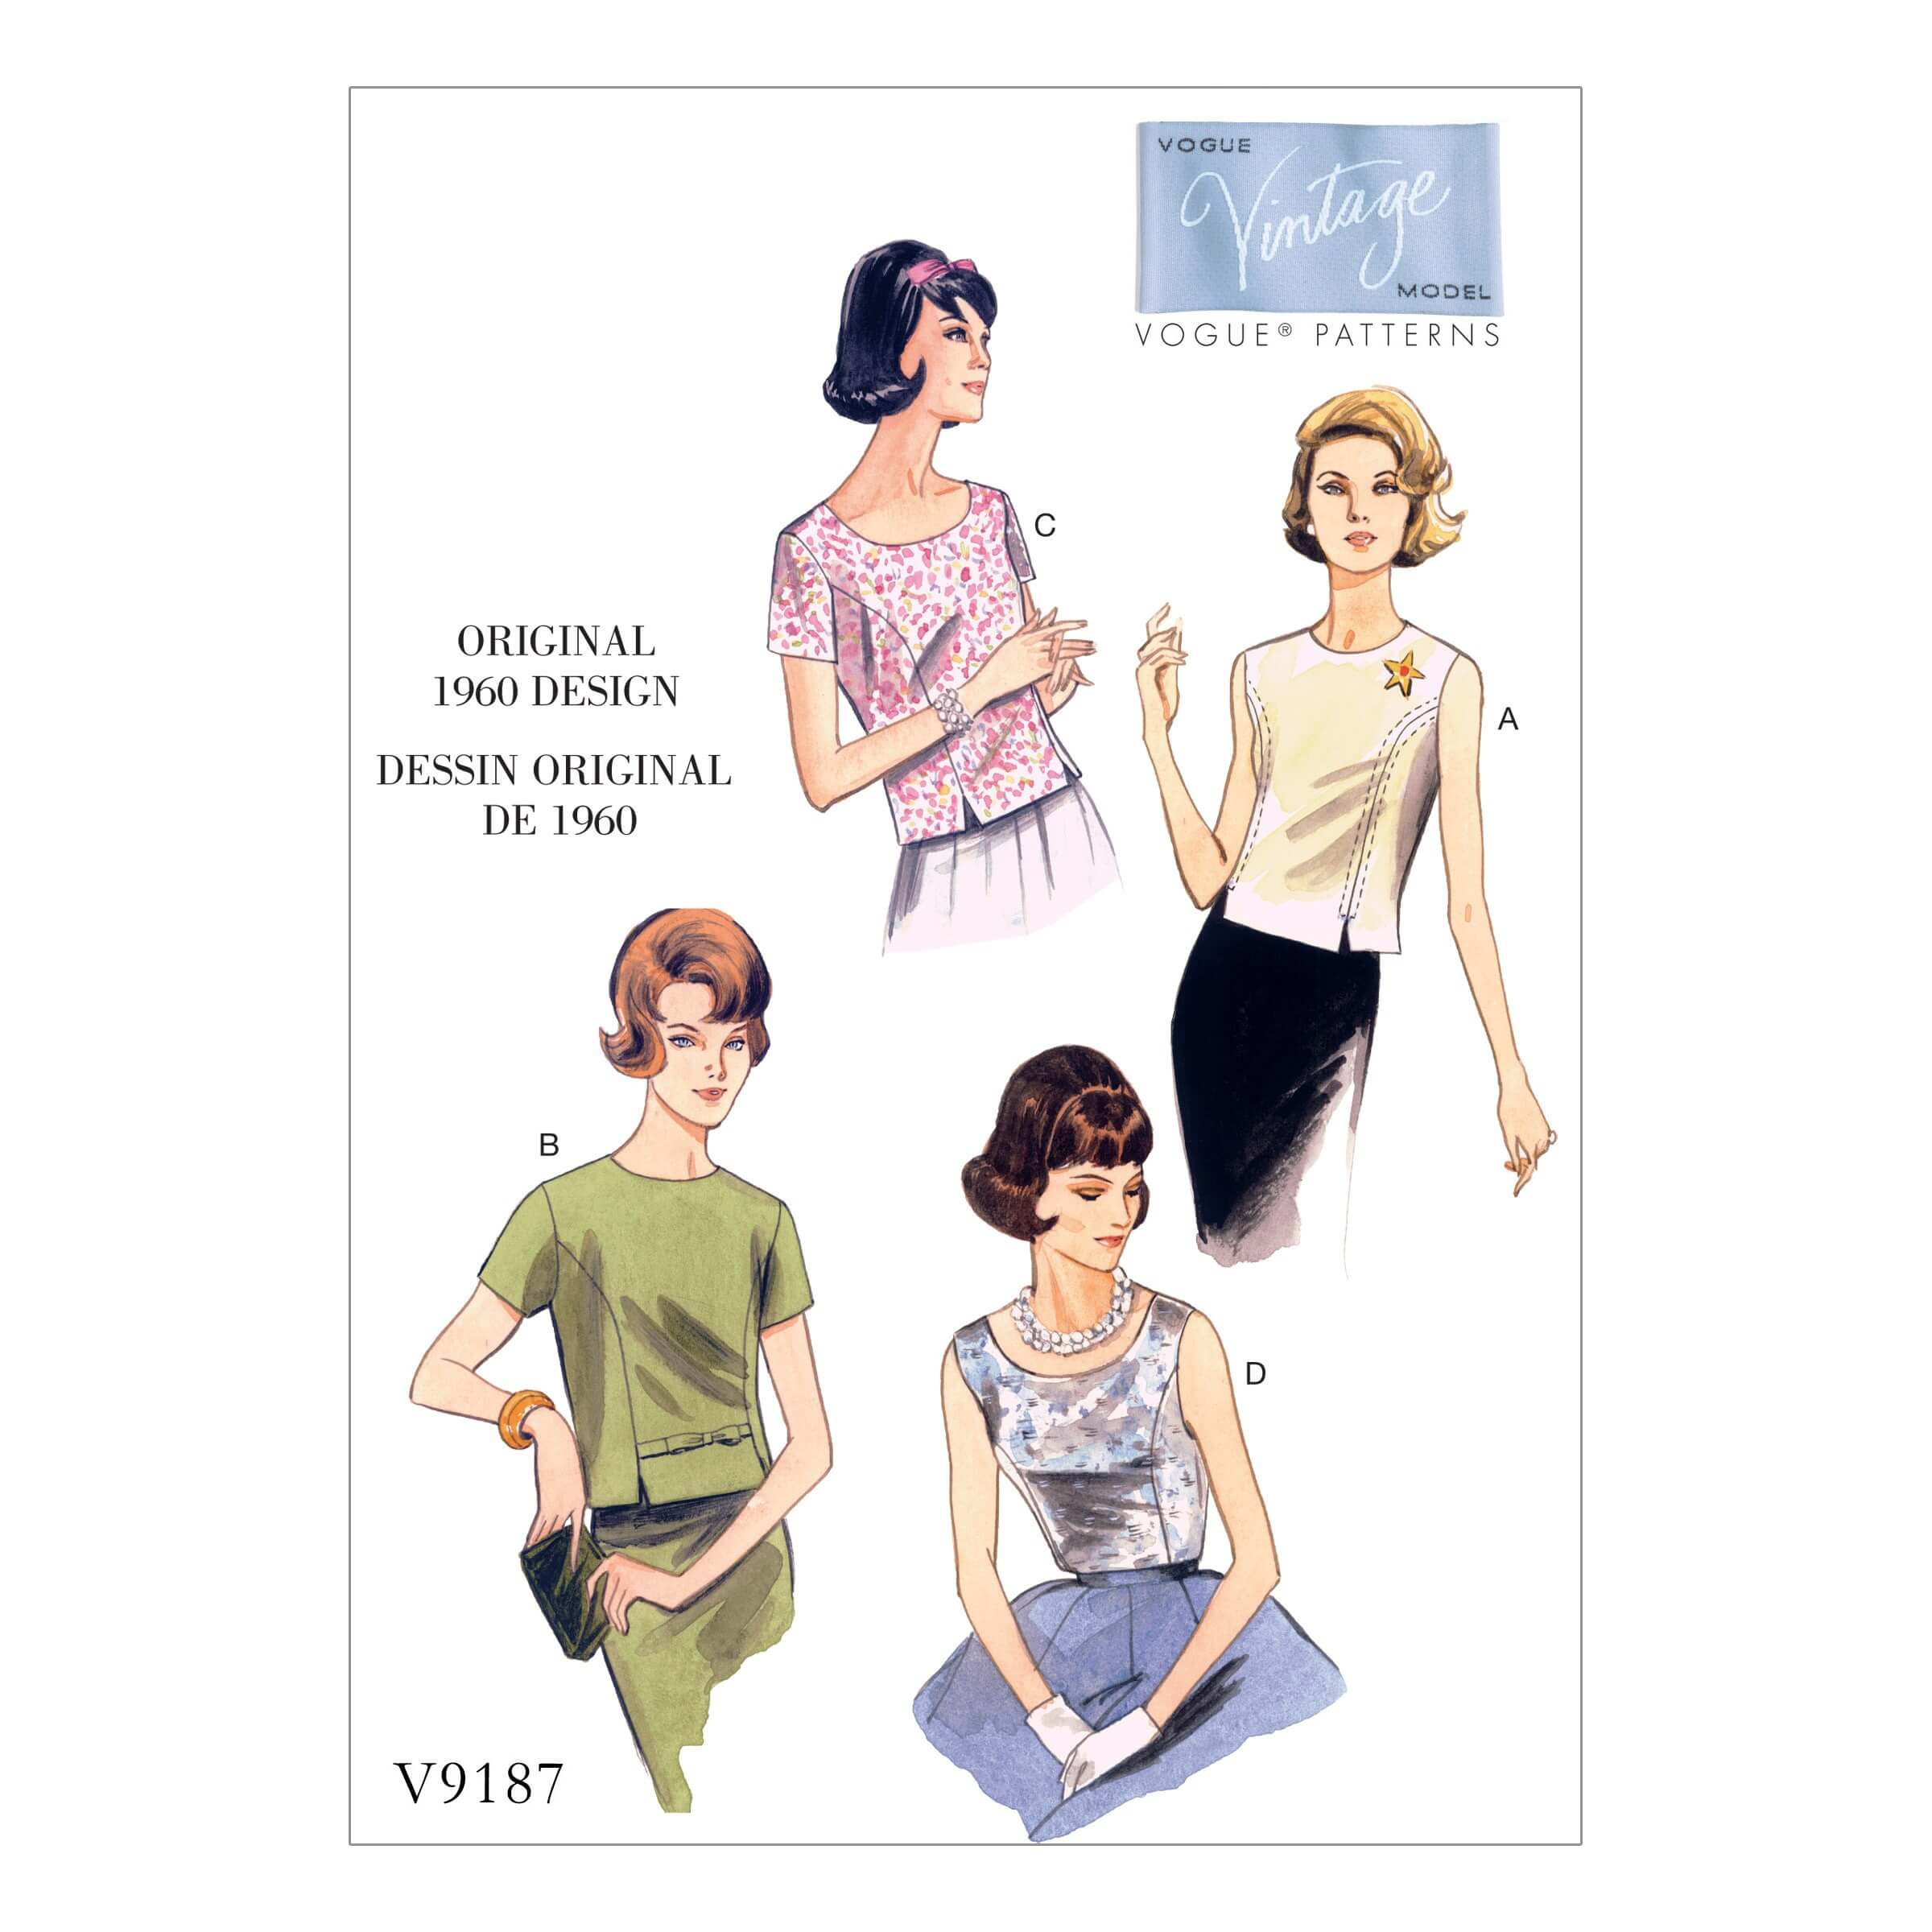 Vogue Sewing Pattern V9187 Women's Vintage Jewel Or Scoop Neck Tops